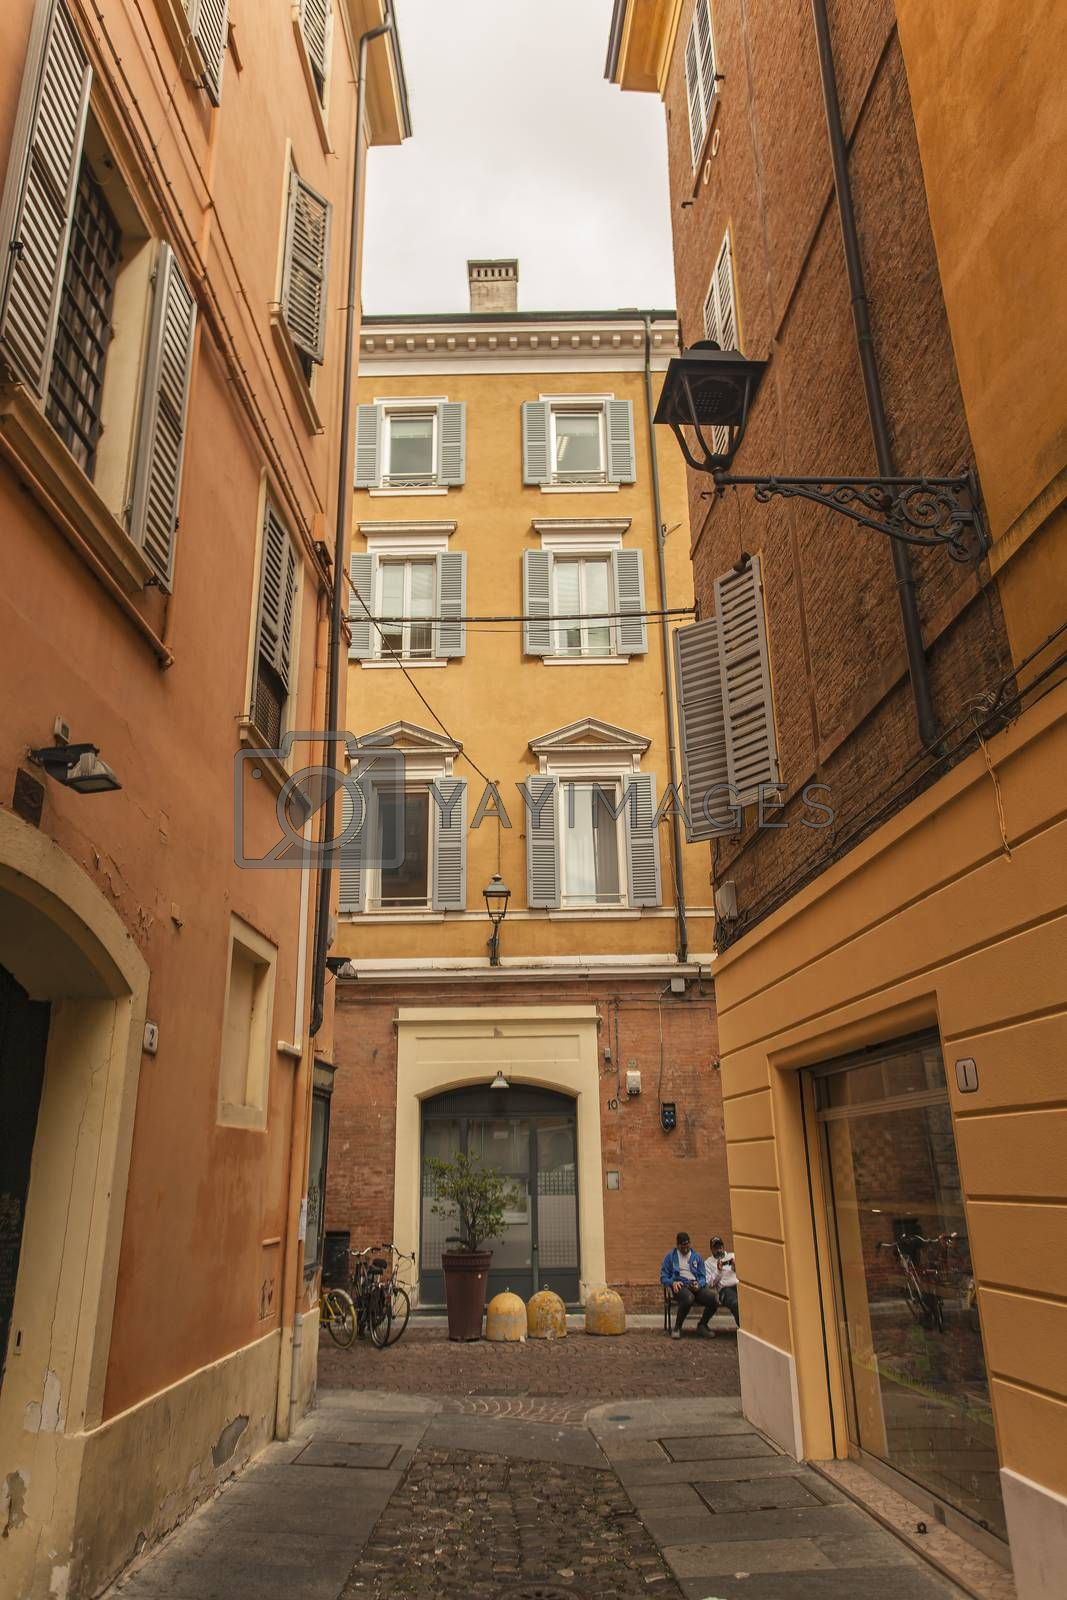 MODENA, ITALY 1 OCTOBER 2020: Modena's alley with historic buildings